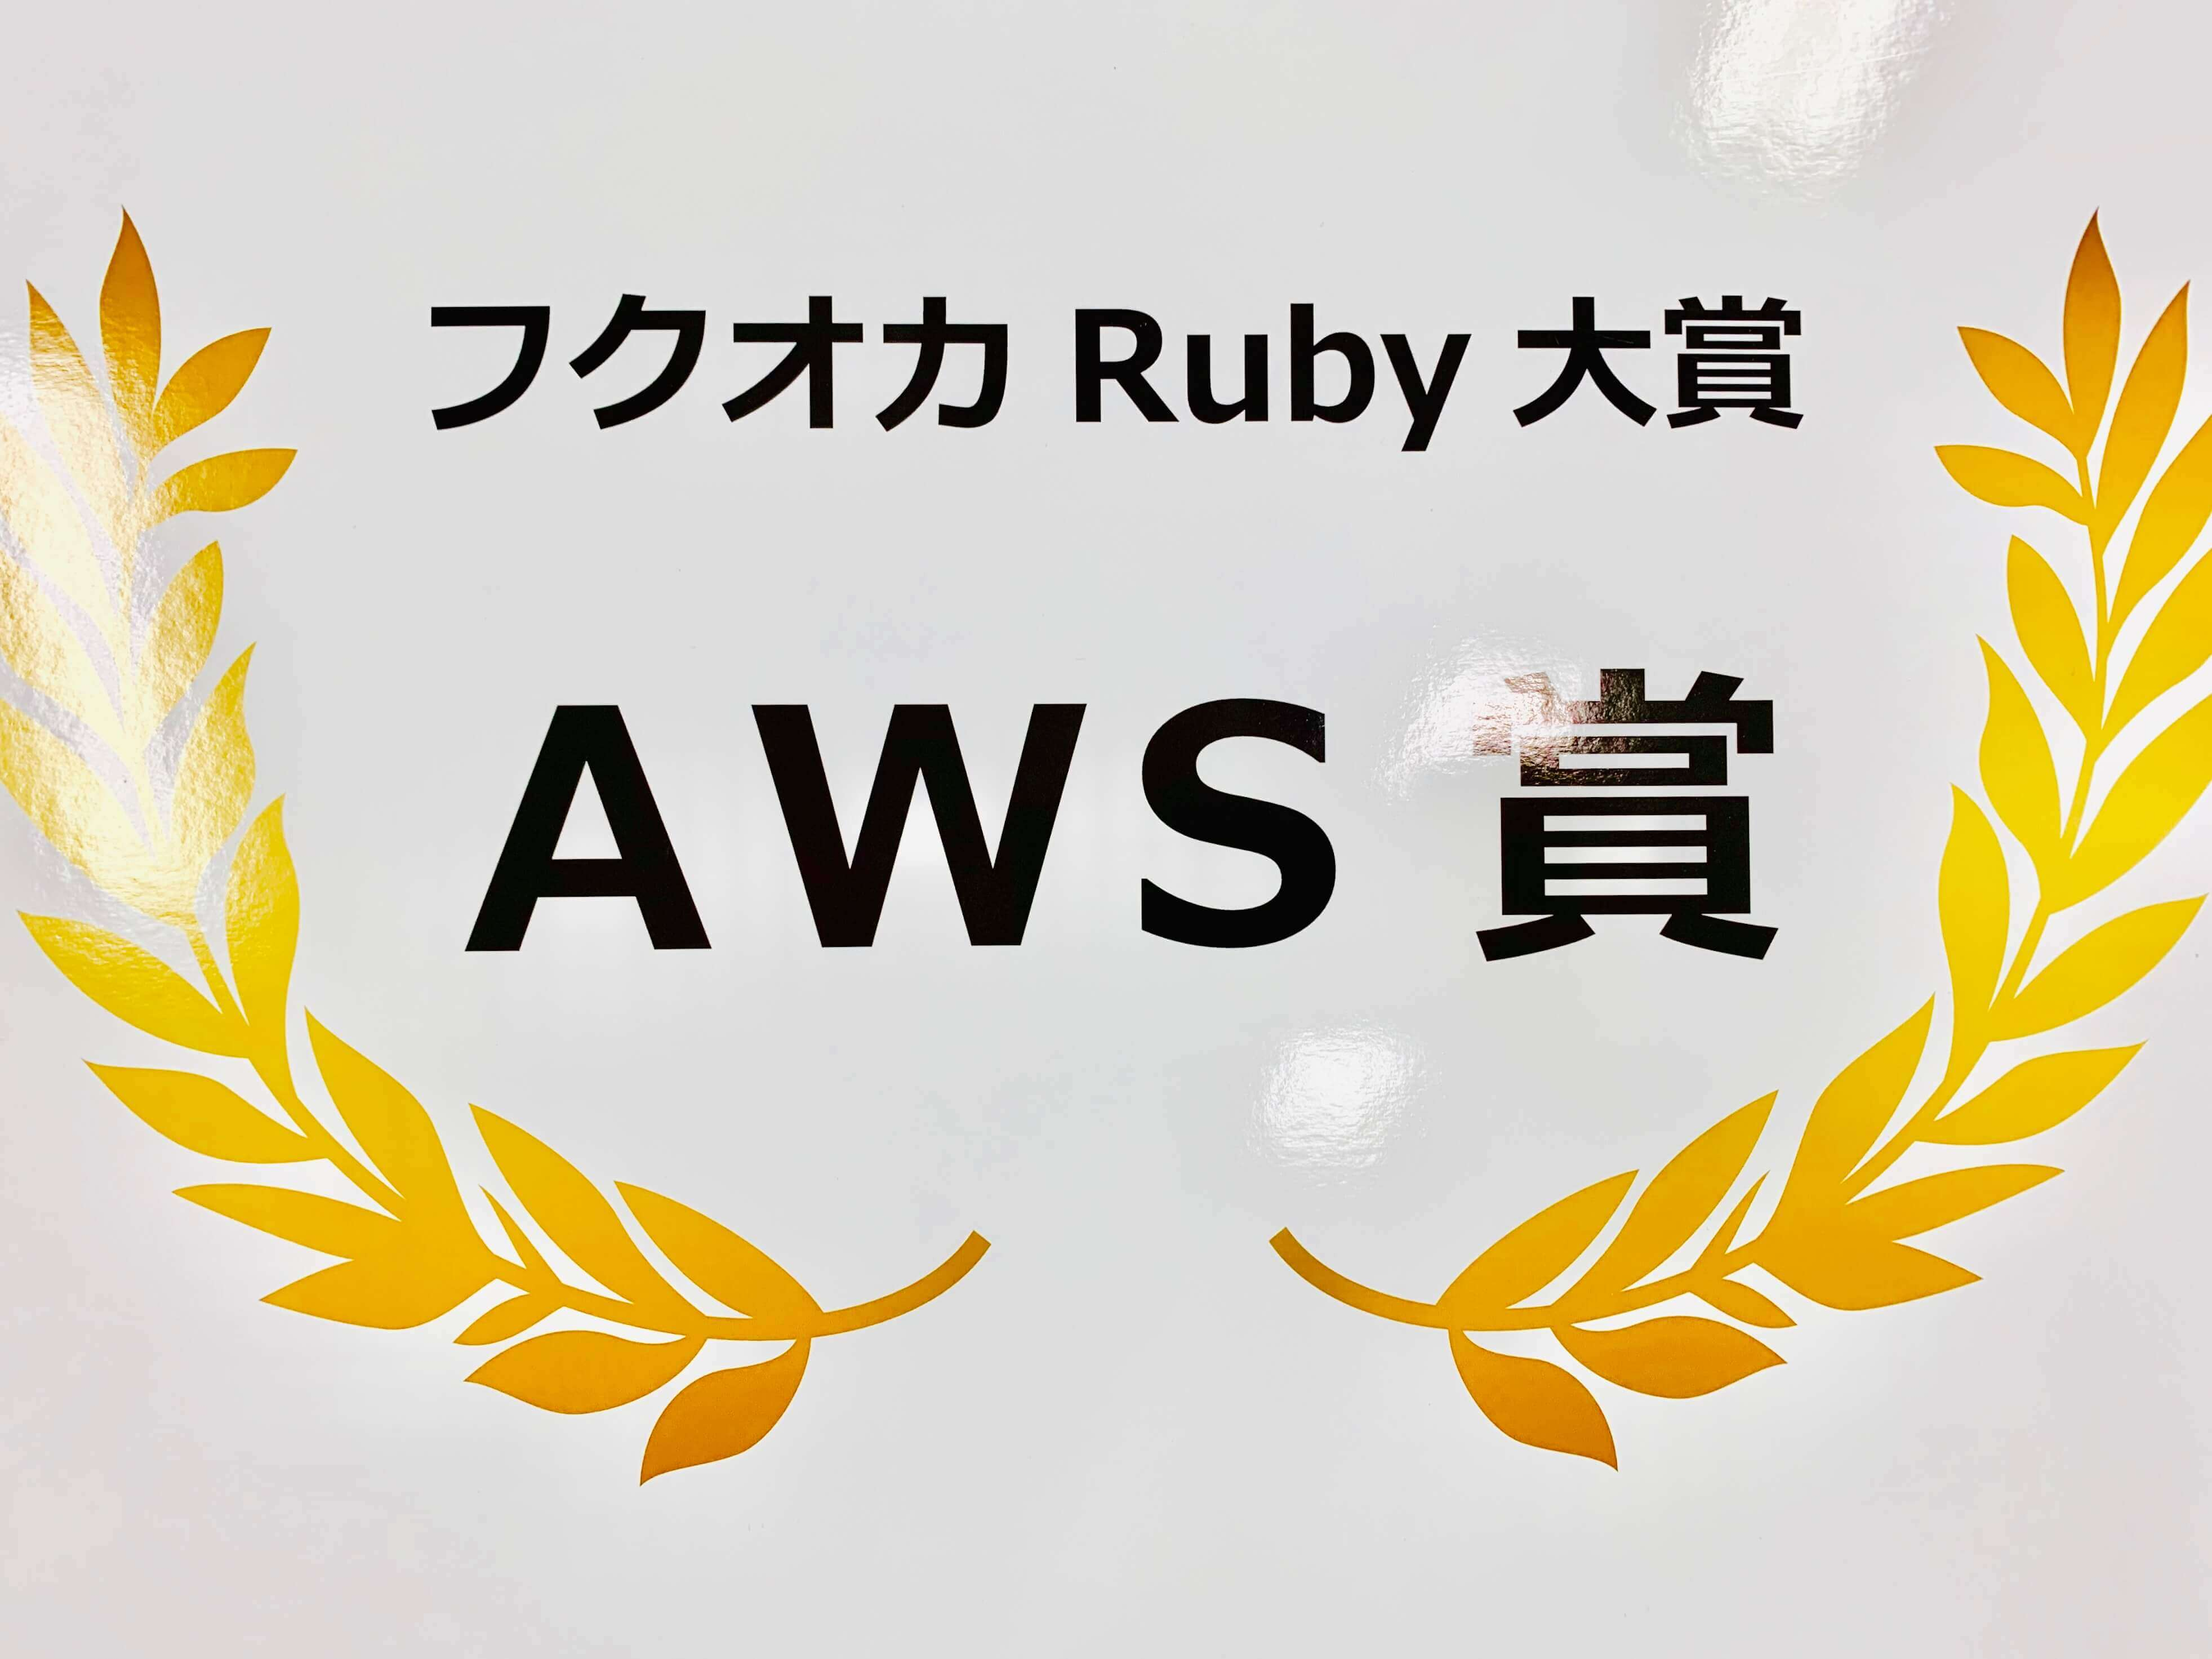 AWS Award at Fukuoka Ruby Award 2019